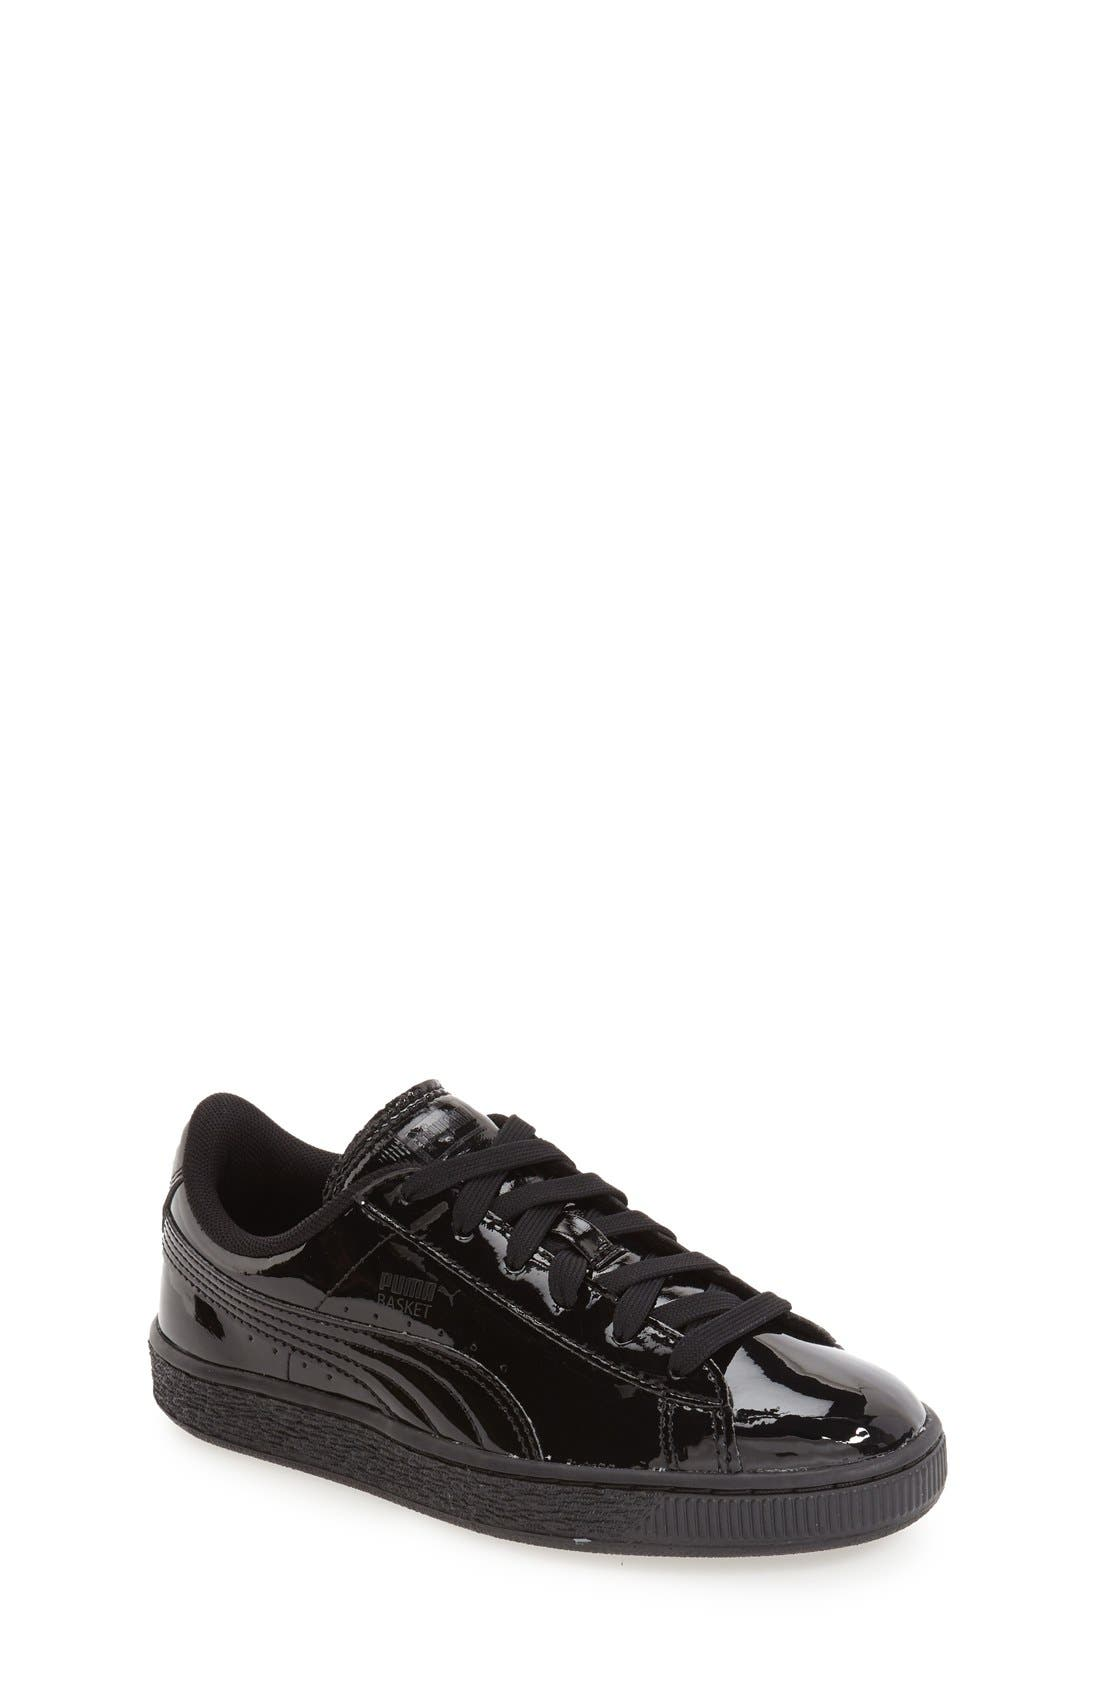 Alternate Image 1 Selected - PUMA 'Basket Classic' Sneaker (Toddler, Little Kid & Big Kid)